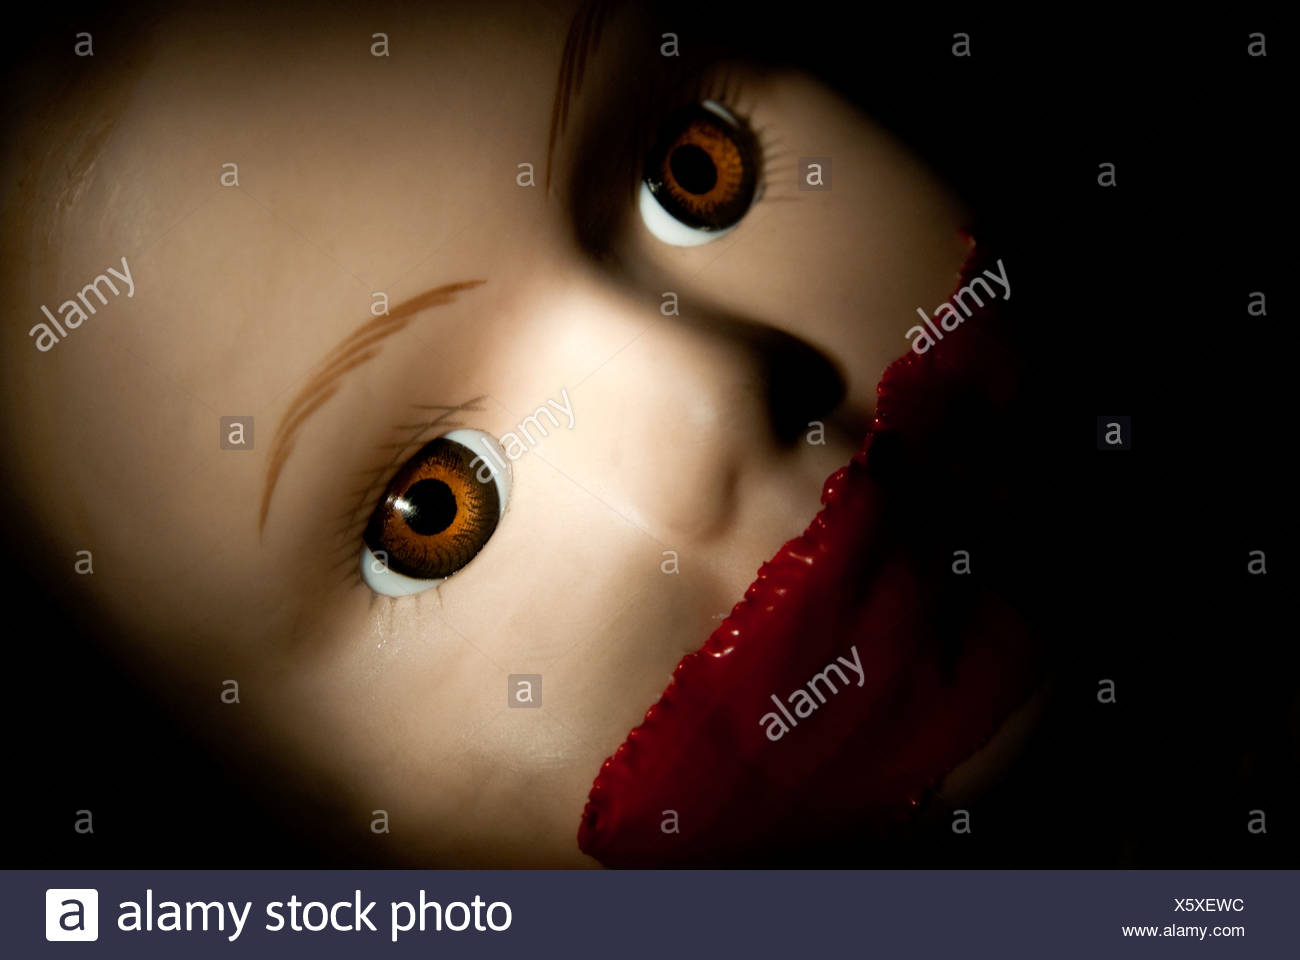 Close up of face of girl doll with red tape on mouth - Stock Image